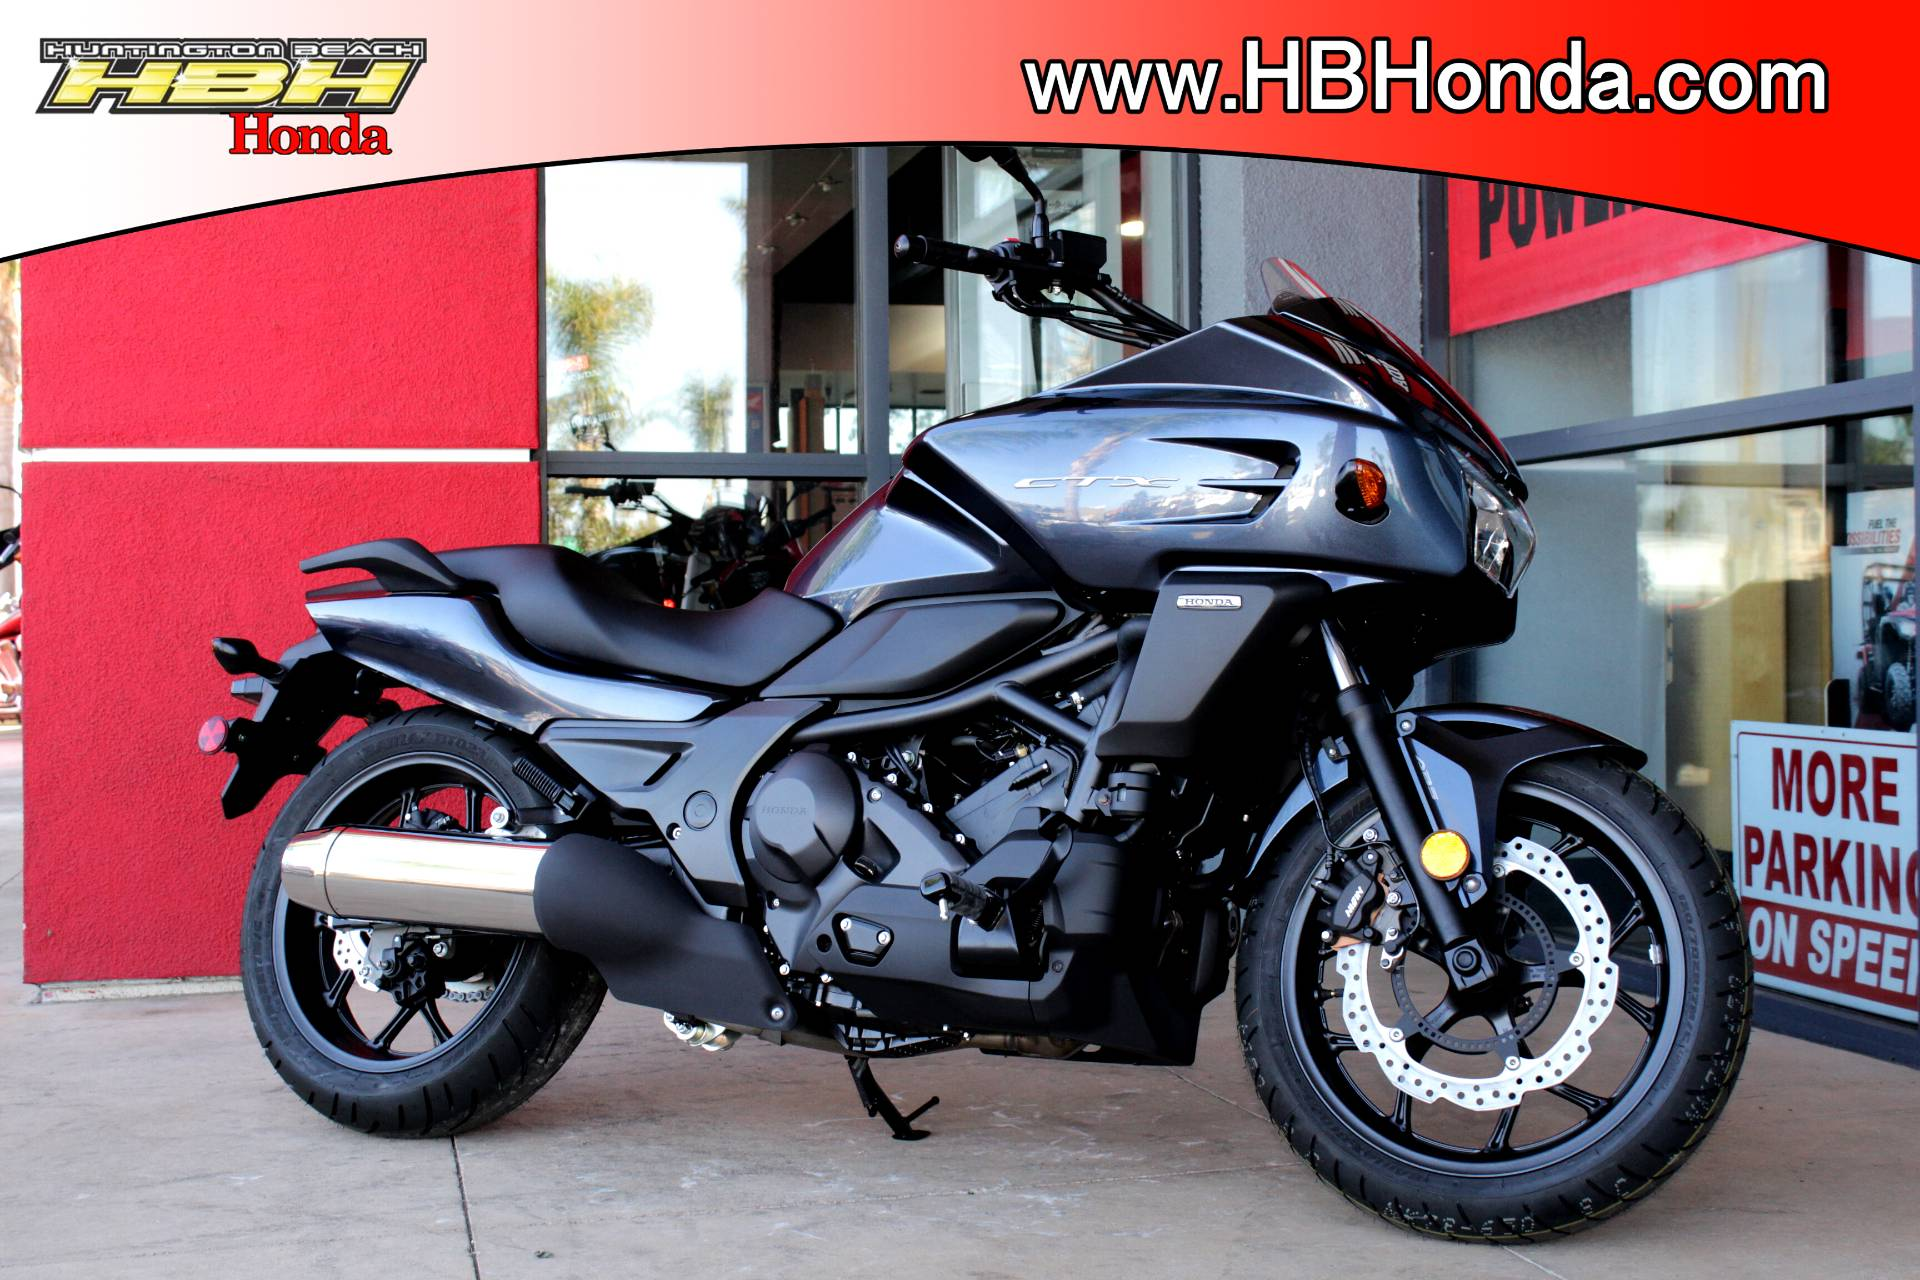 2016 Honda Ctx700 Dct Abs In Huntington Beach California